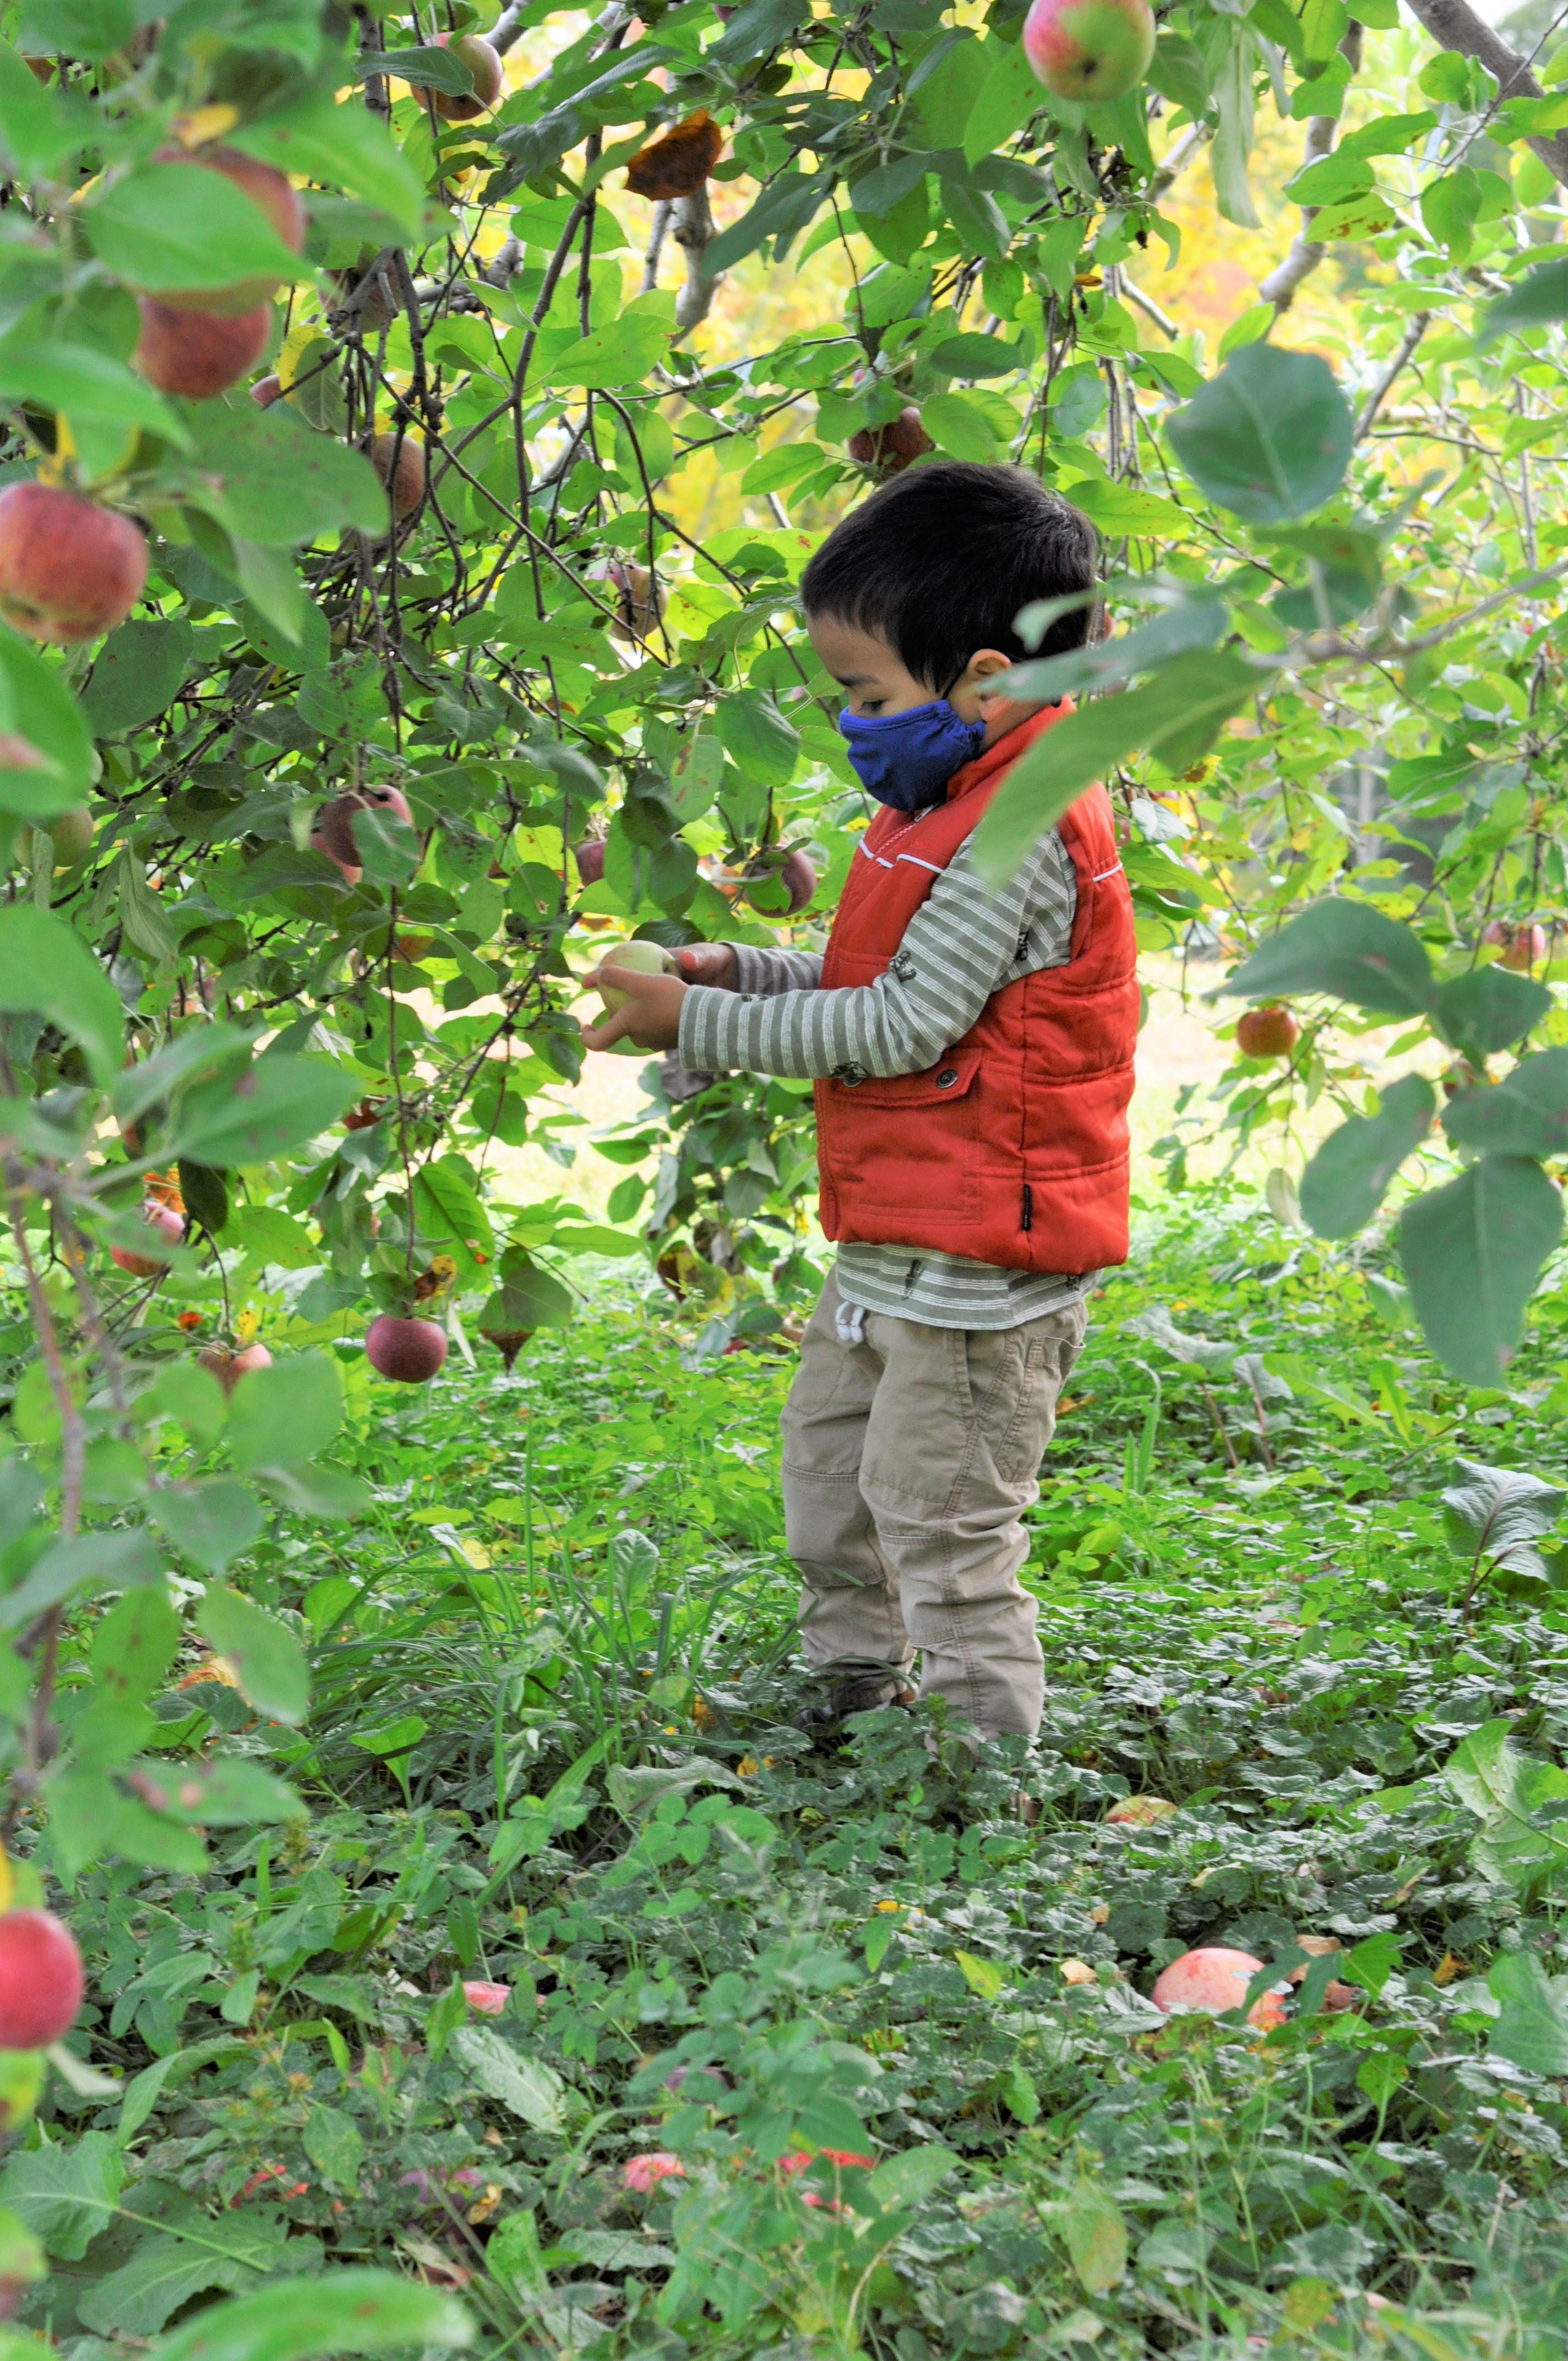 Picking Apples at the Orchard | Taste As You Go